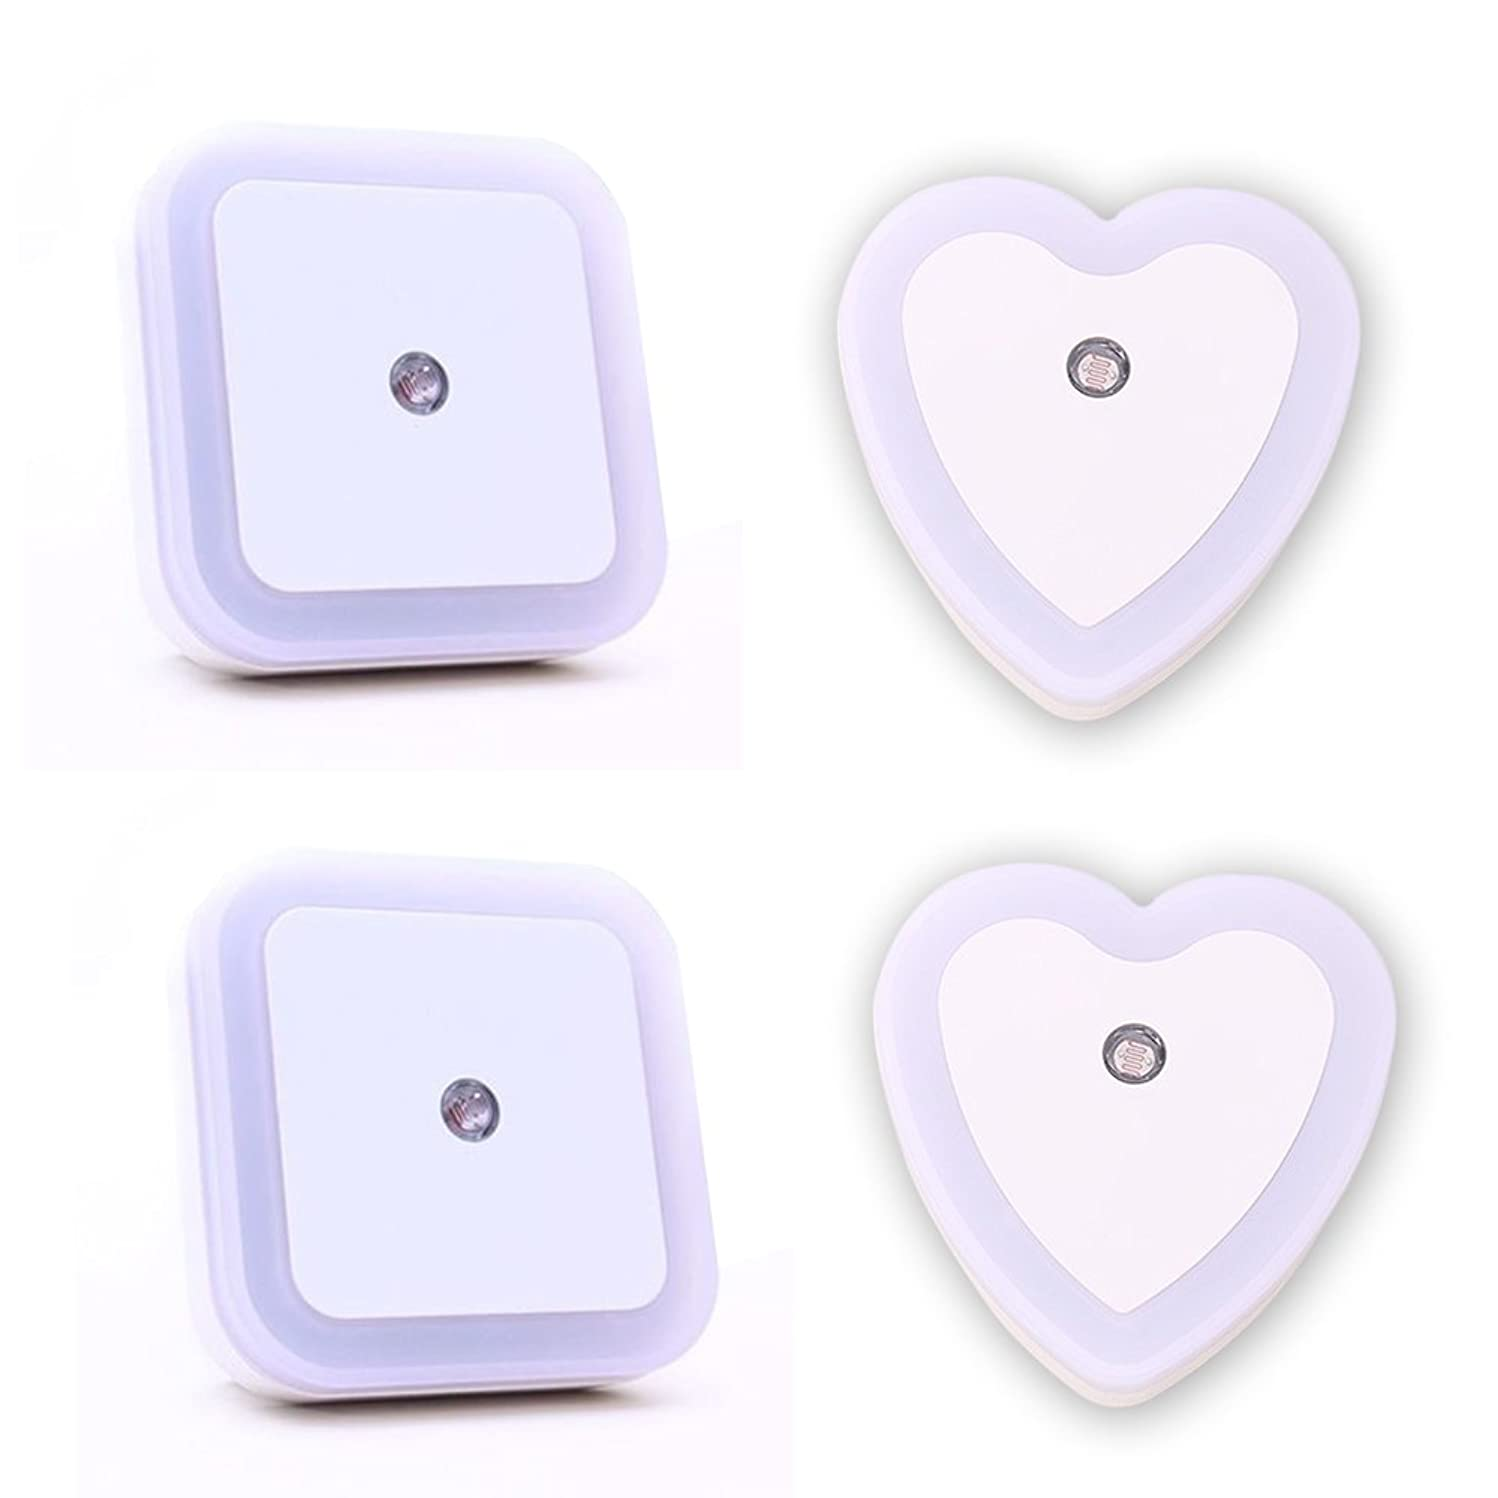 Sealive Daylight White 0.5W Plug in LED Night Light Wall Lamp with Smart Sensor,Automatic on Off,Plug to Use,Perfect for Bedroom,Nursery and Baby's Room - 2 Packs Square and Heart Shape Light